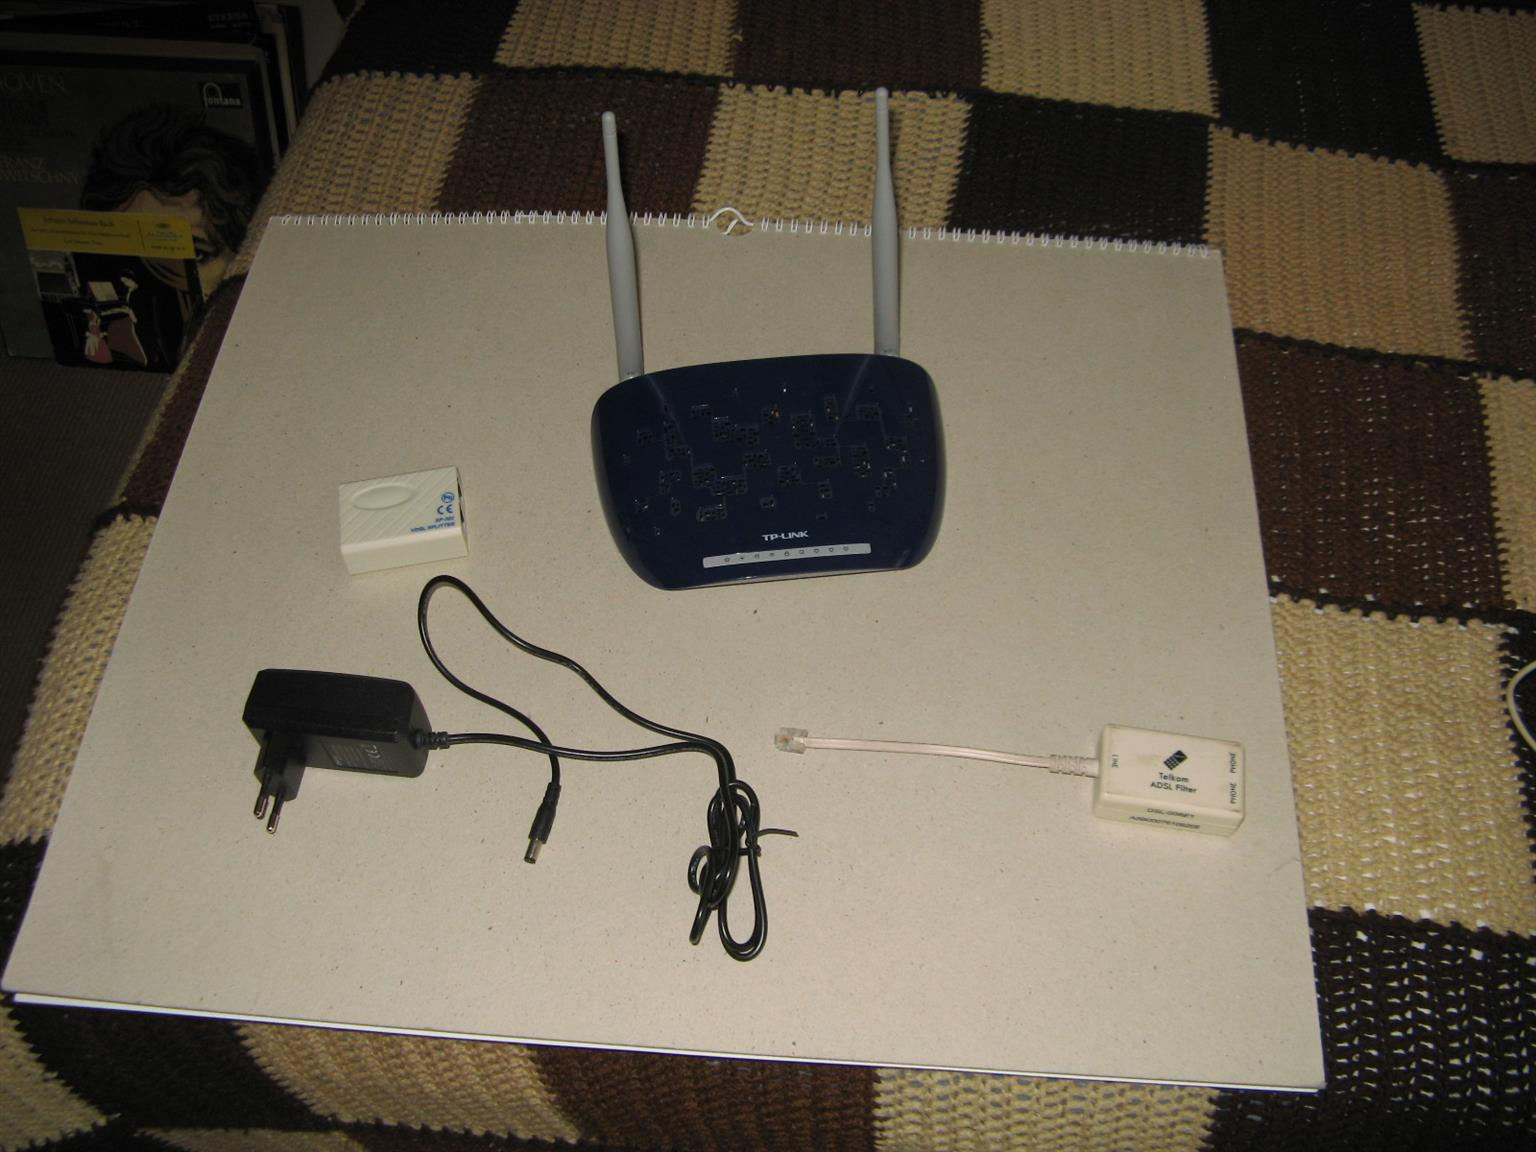 PC ADSL router and adaptor plug for half price